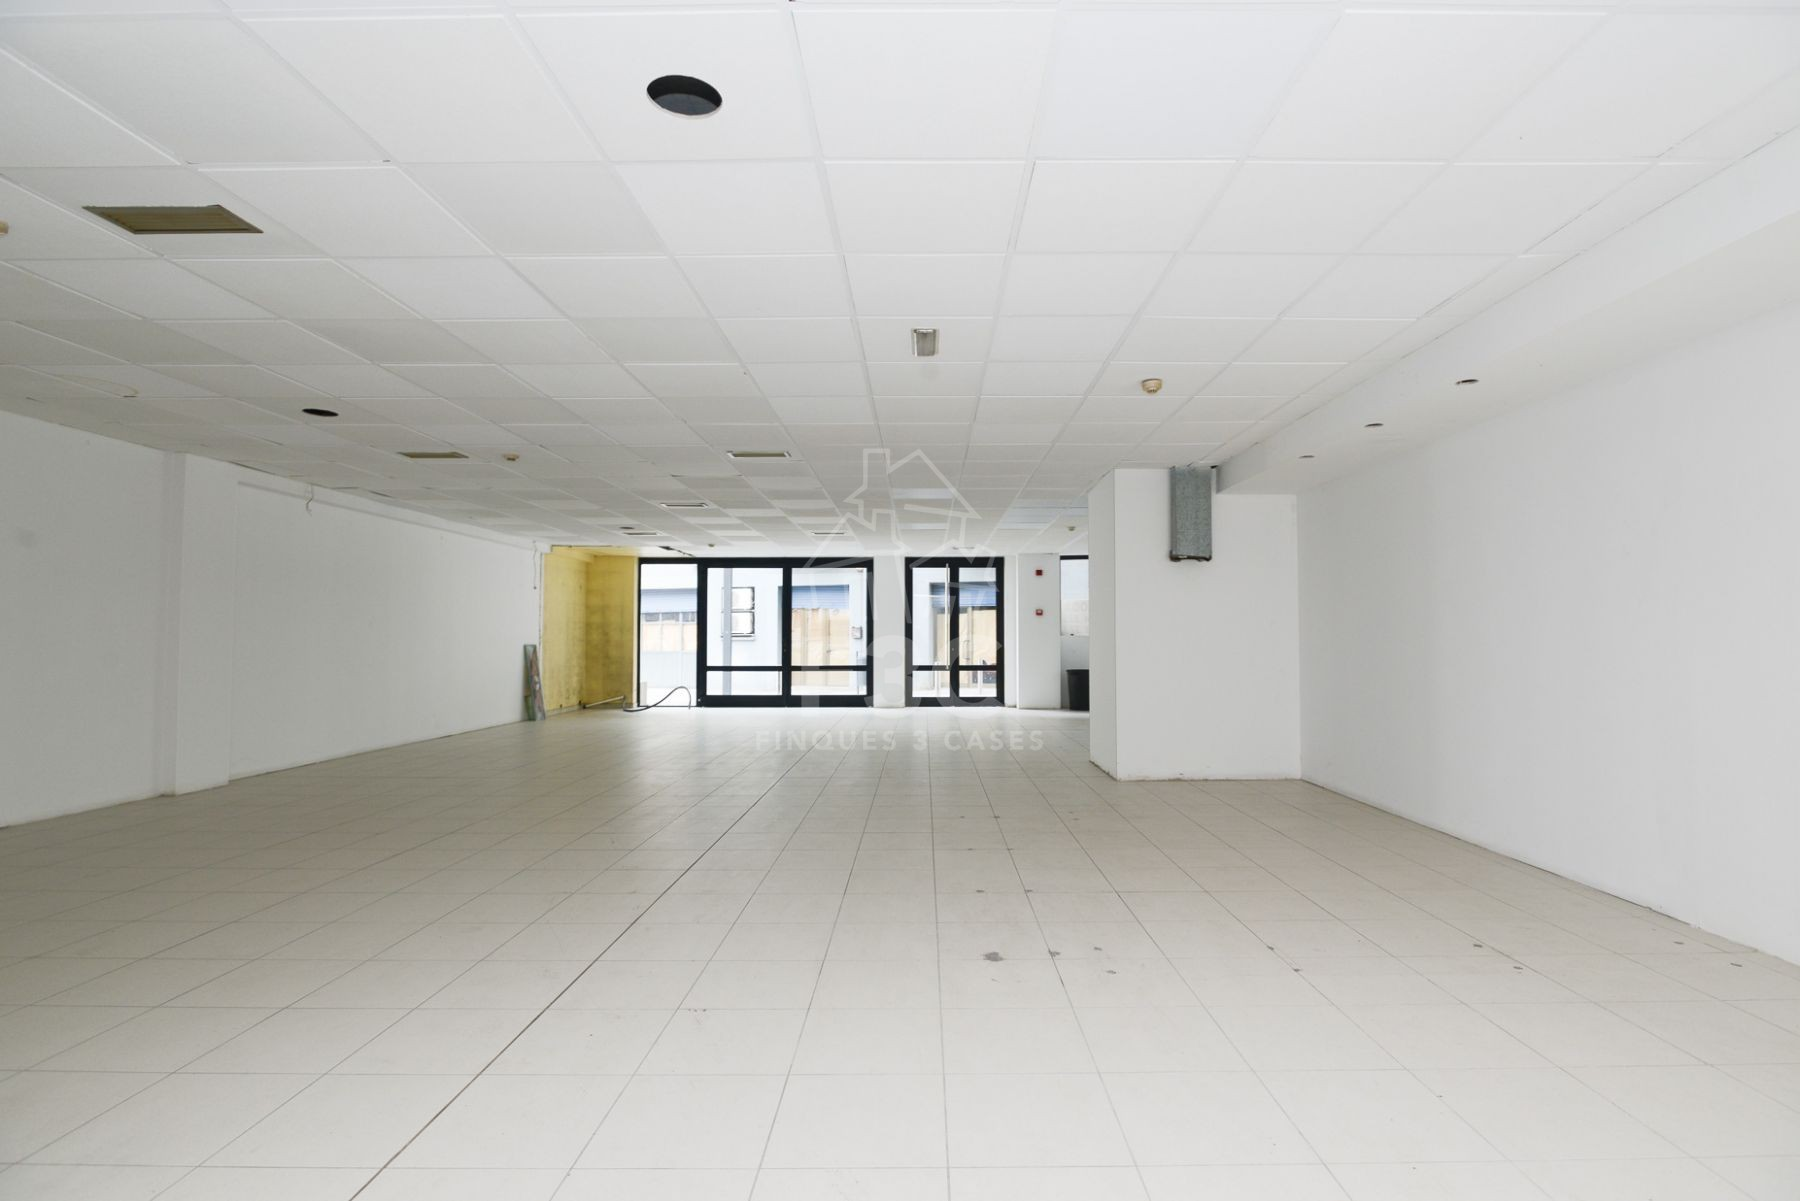 Commercial property for rent in Escaldes-Engordany